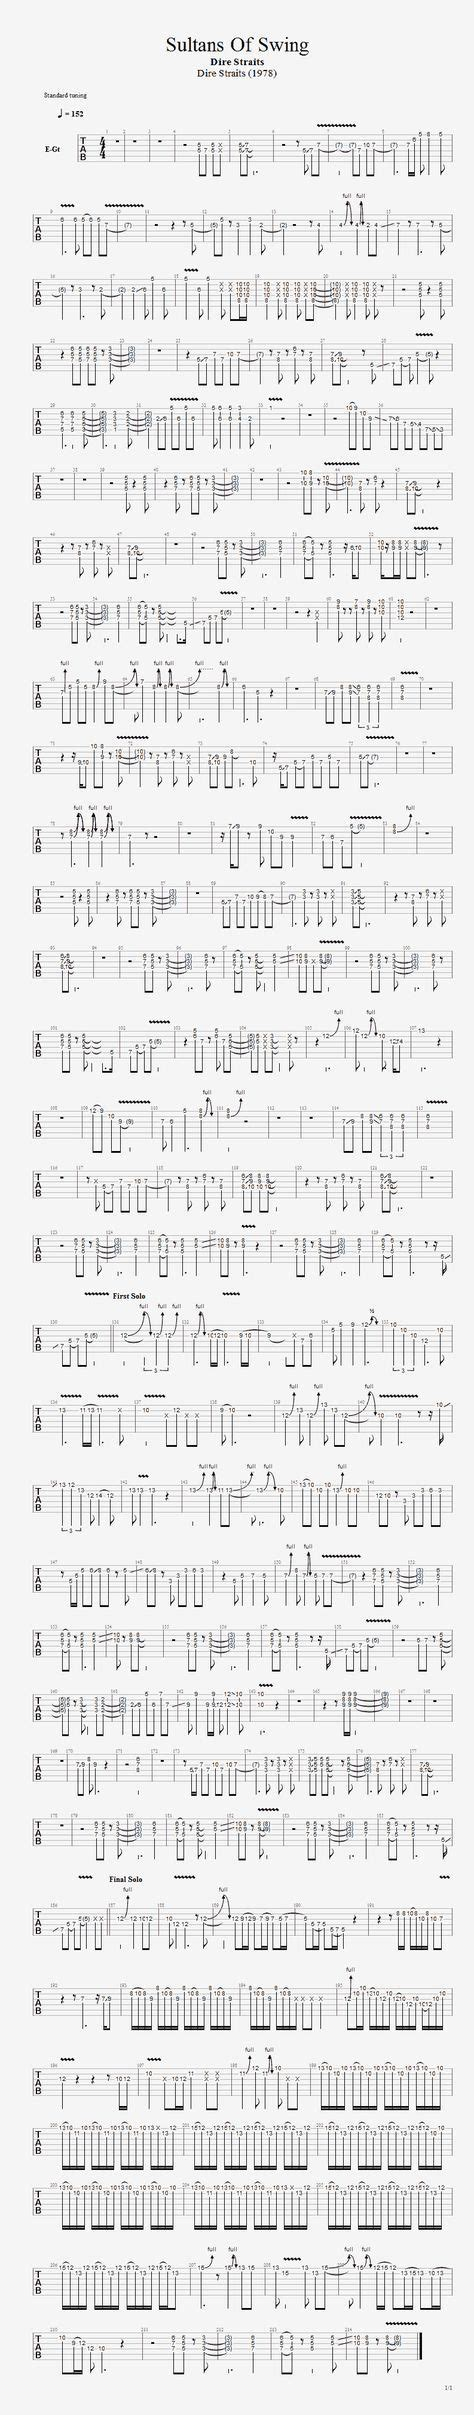 Sultans Of Swing Guitar Pro by Sultans Of Swing Guitar Tab 악보 Guitar Sheet